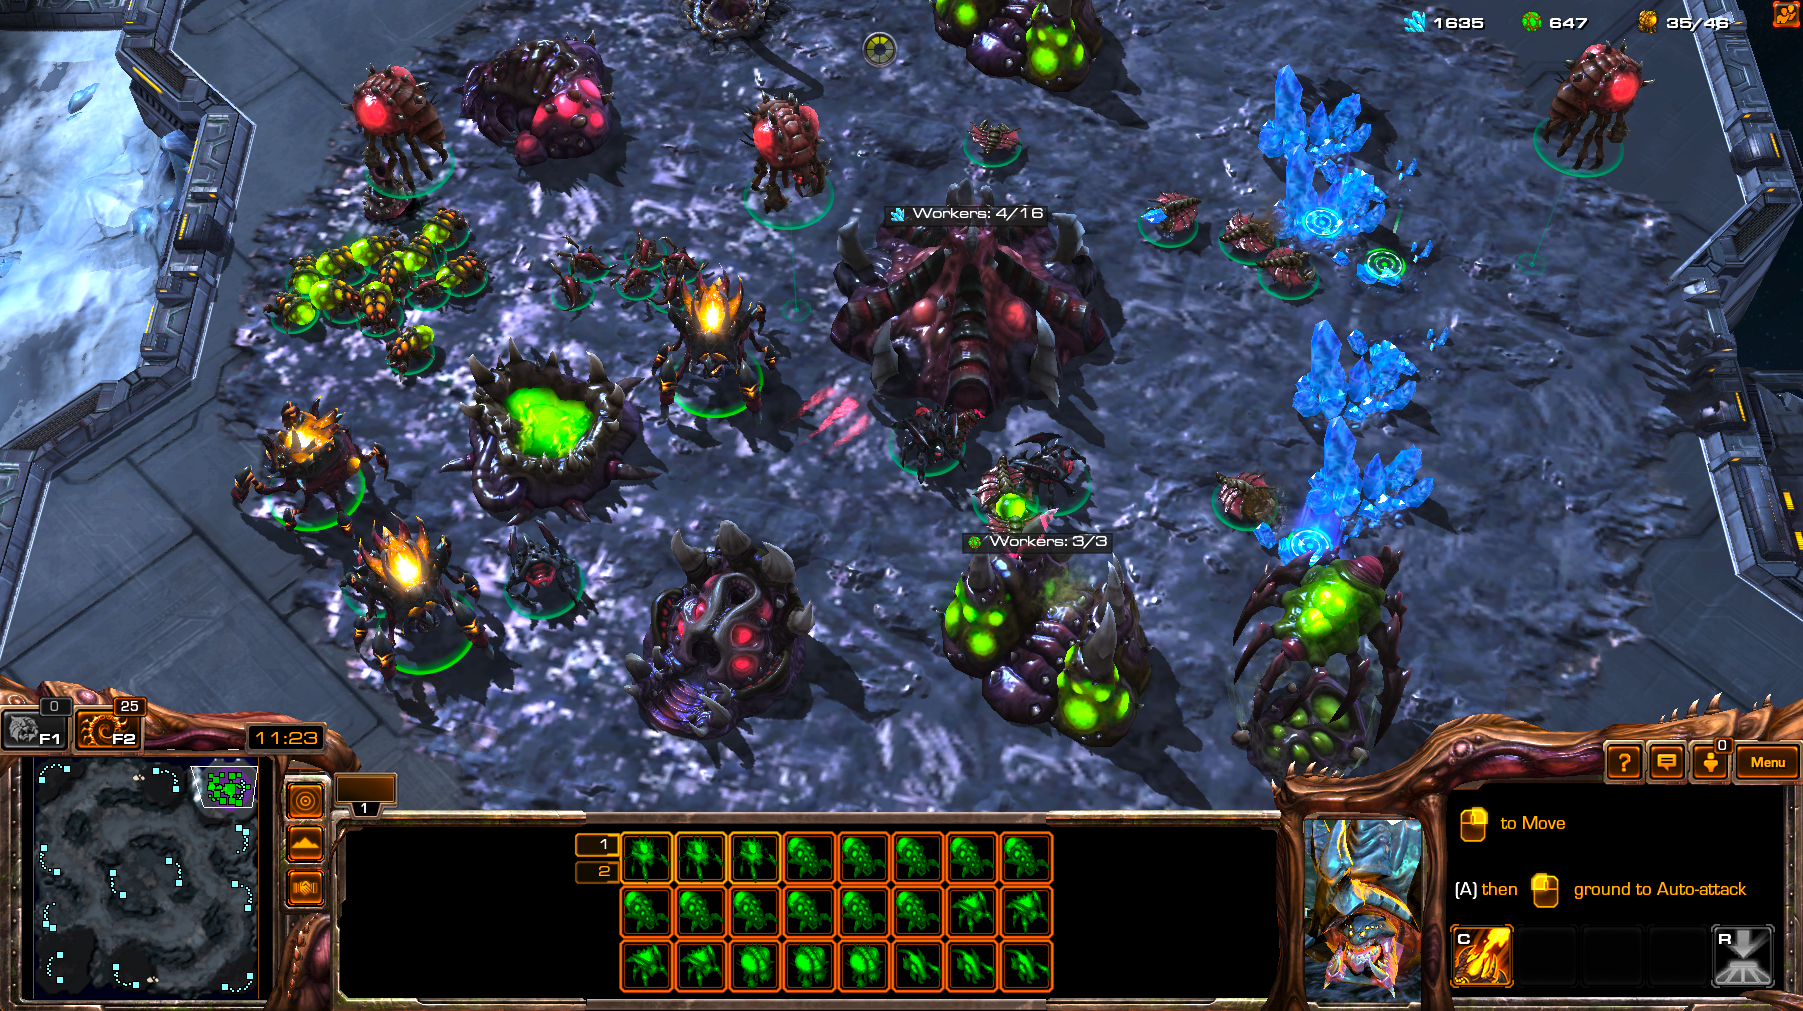 Tencent Tstarbots Defeat Starcraft Ii S Powerful Builtin Ai In The Full Game By Synced Syncedreview Medium